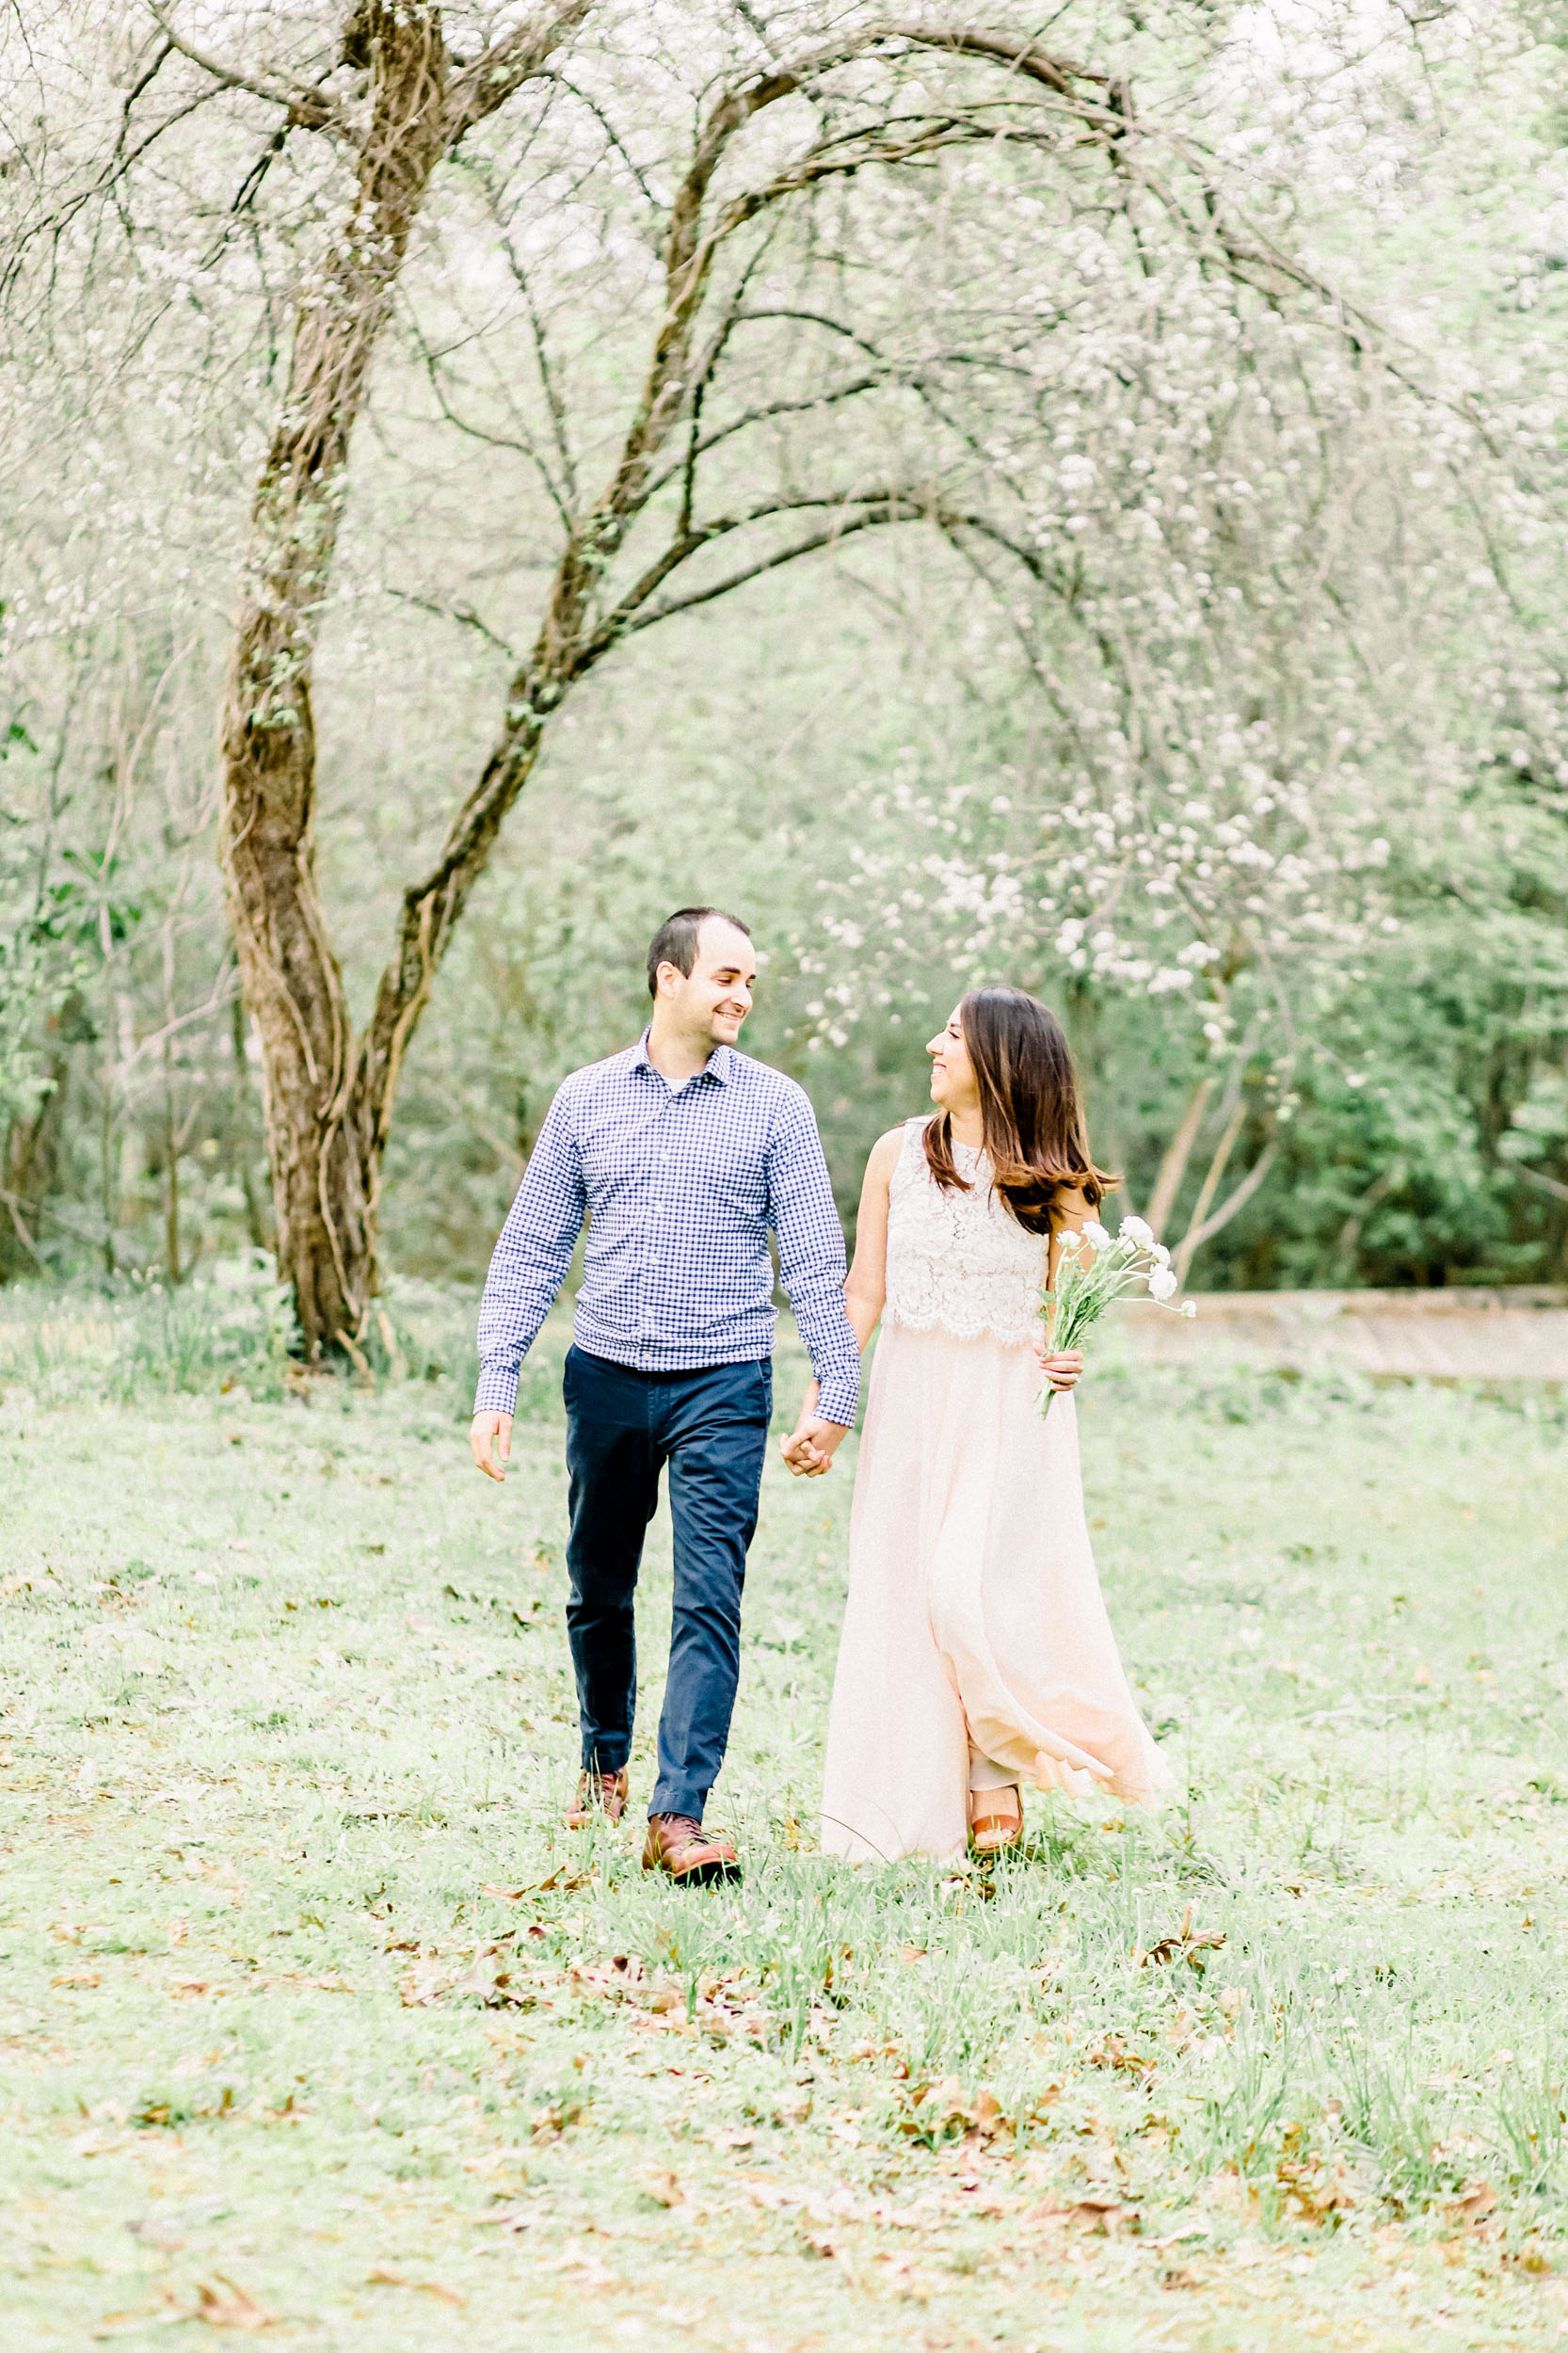 Cassie Schott Photography_Houston and Chicago Portrait Photographer_Engagement Sessions and Anniversary Sessions_45.jpg